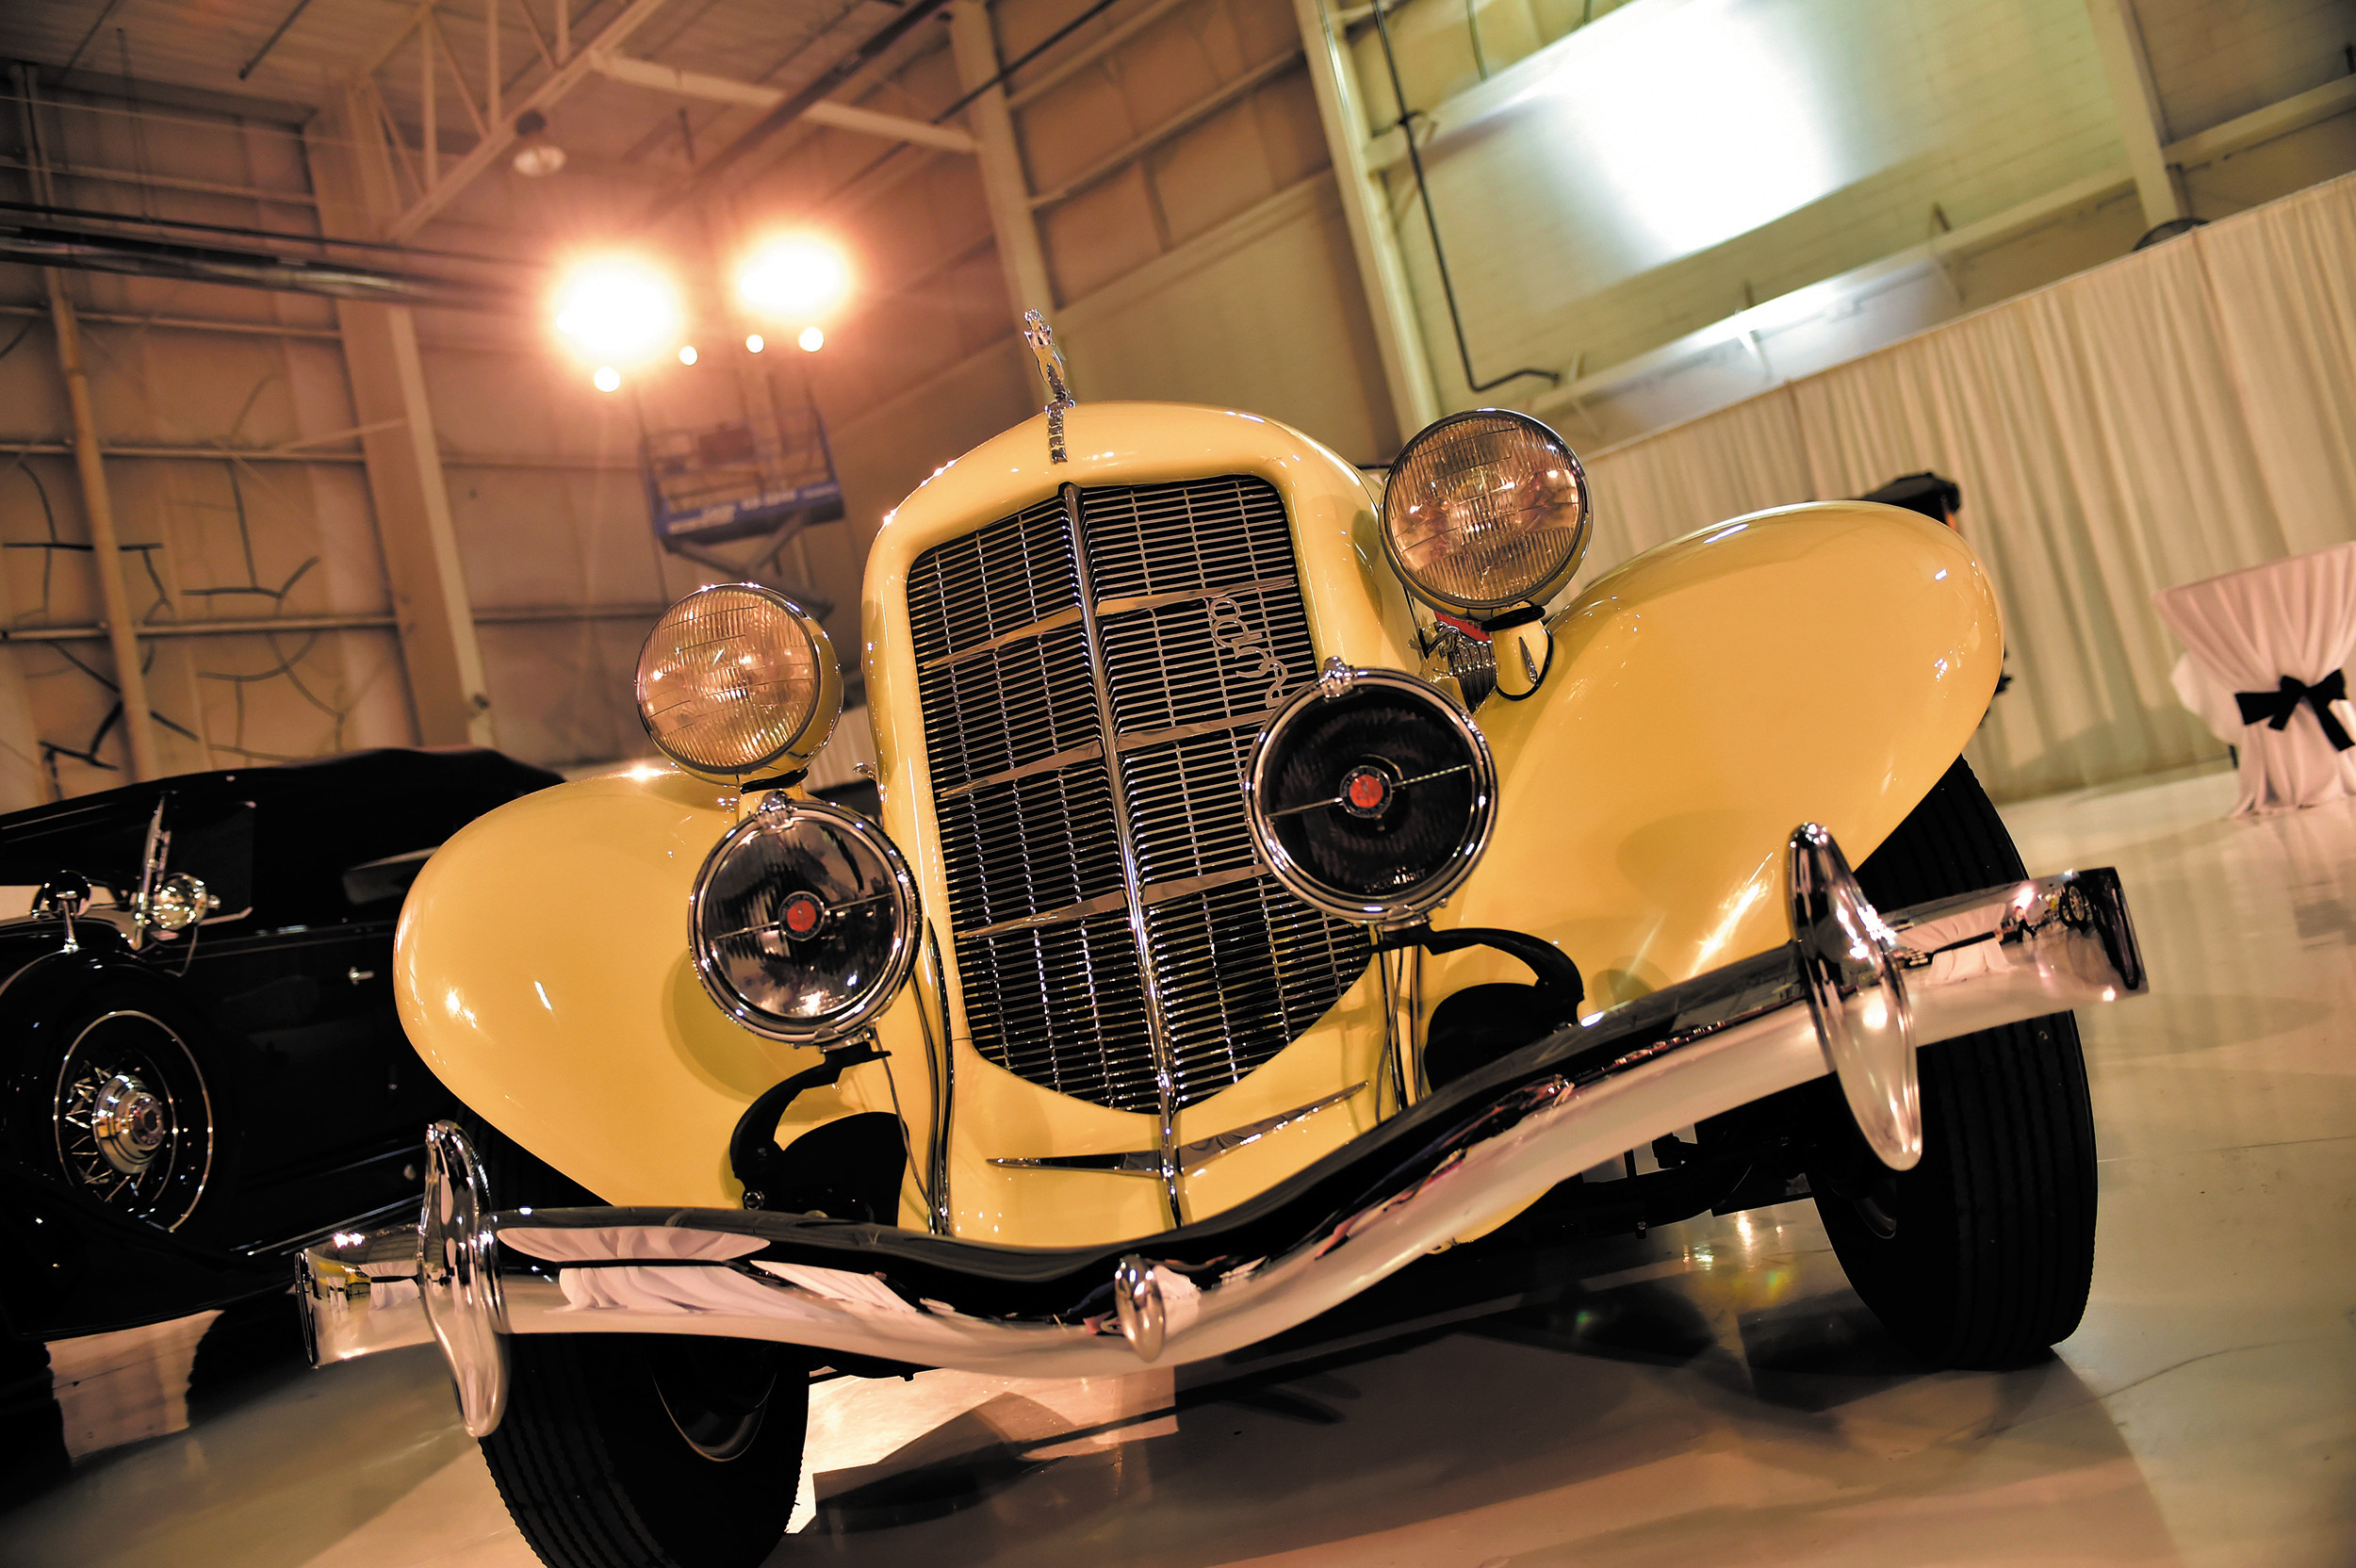 Just one of more than 100 automobile, this 1936 Auburn 851 Boattail Speedster, courtesy of the Clive Cussler Museum in Arvada add a dash of class to the hanger at the 2104 Morgan Adams Concours d'Elegance held Saturday, Aug. 23 at Centennial Airport. Now in its 12th year, the annual event helps raise awareness and funding for childhood cancer research.